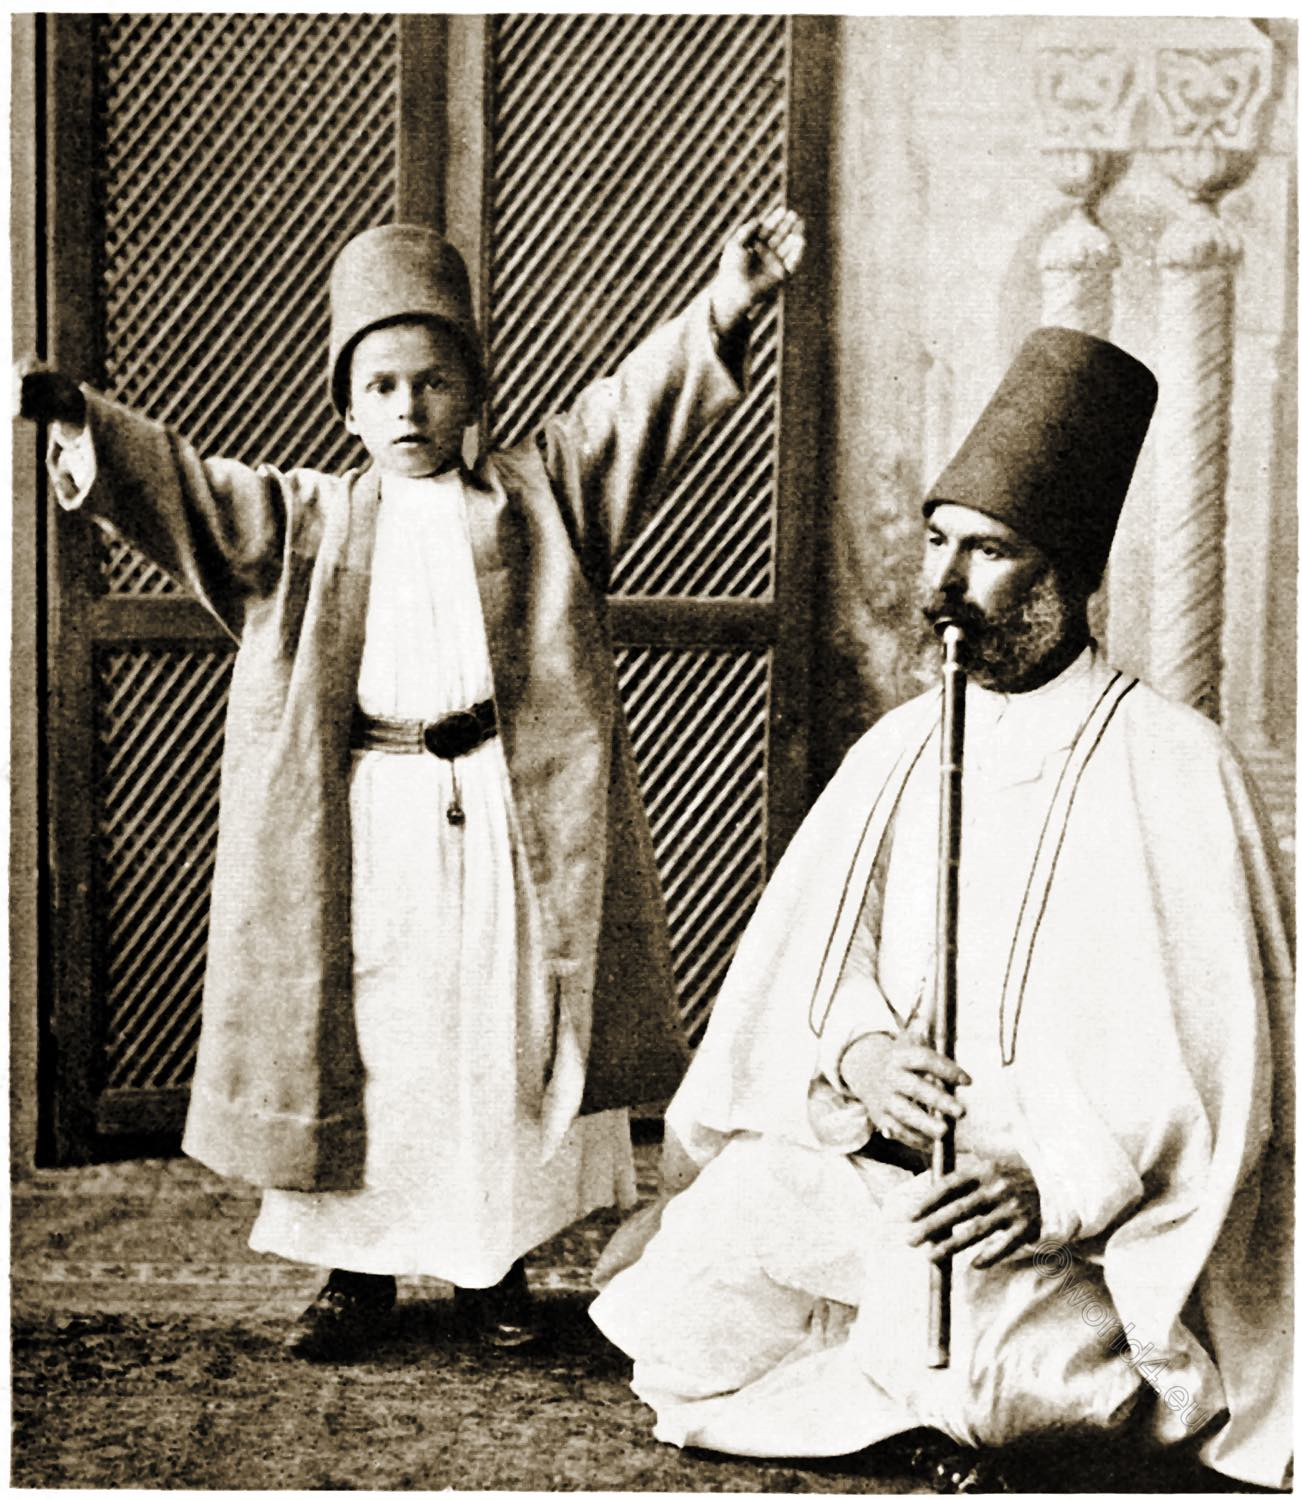 Mevlevi, neophyte, Islamic, Dervishes, sprituality, sufism